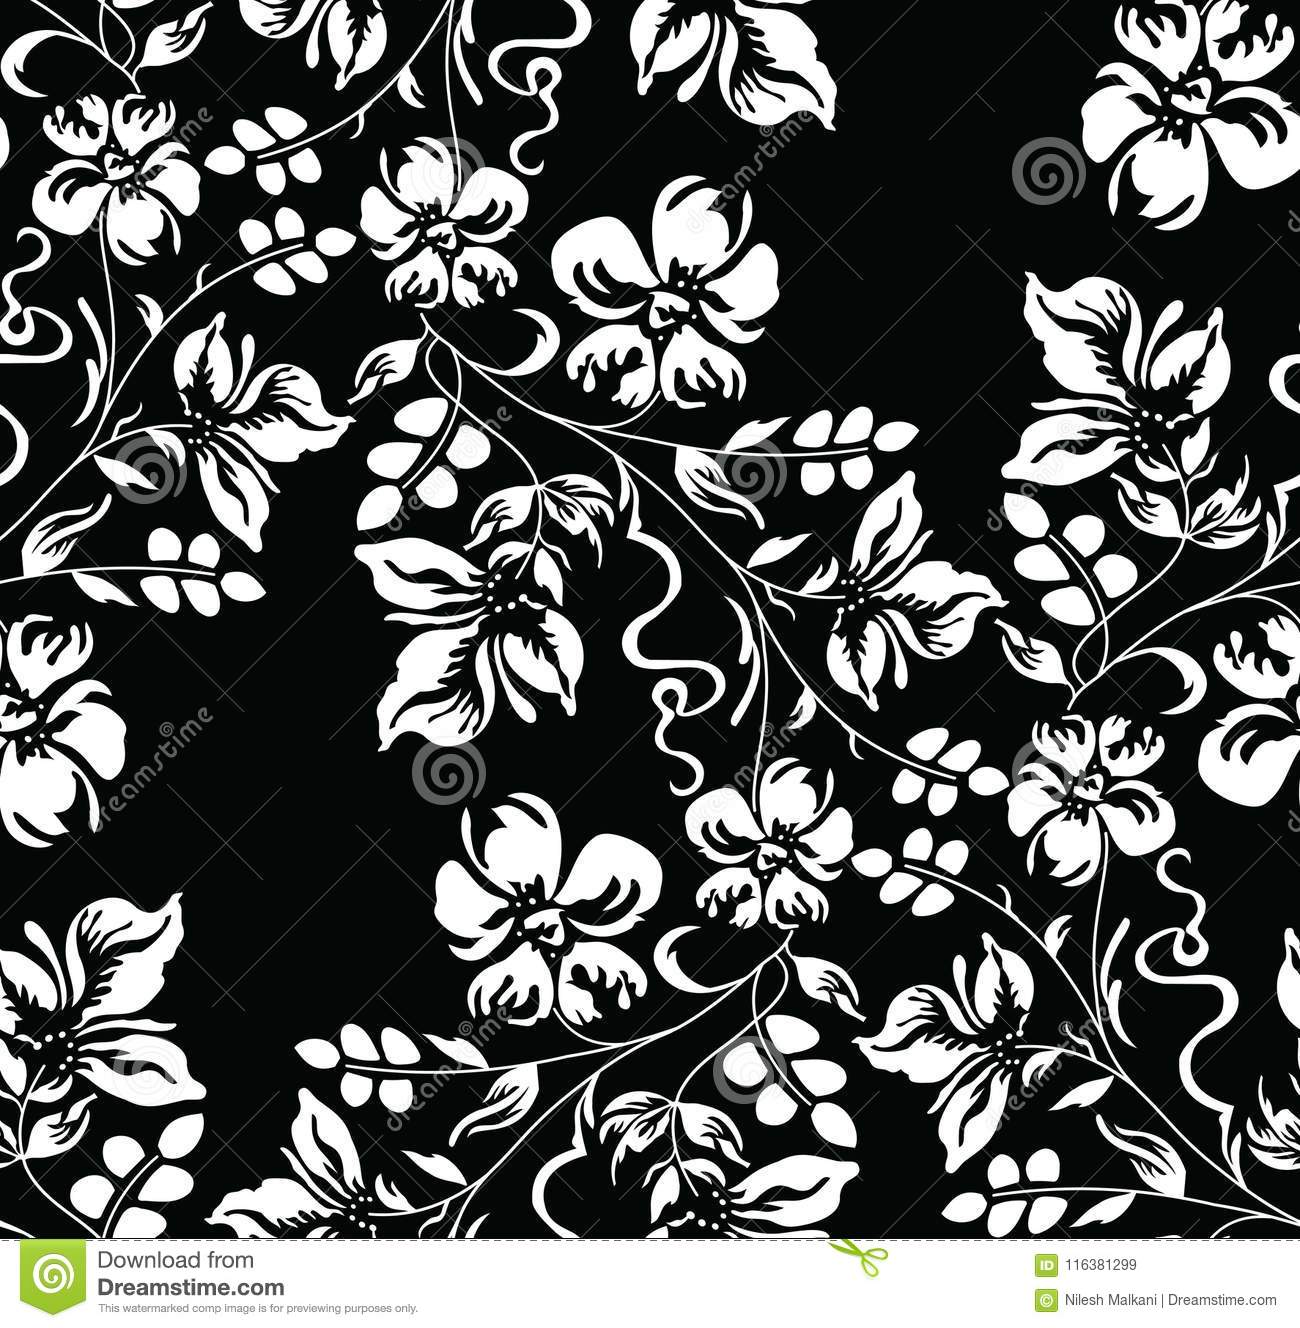 Seamless Black And White Damask Floral Wallpaper Stock Vector